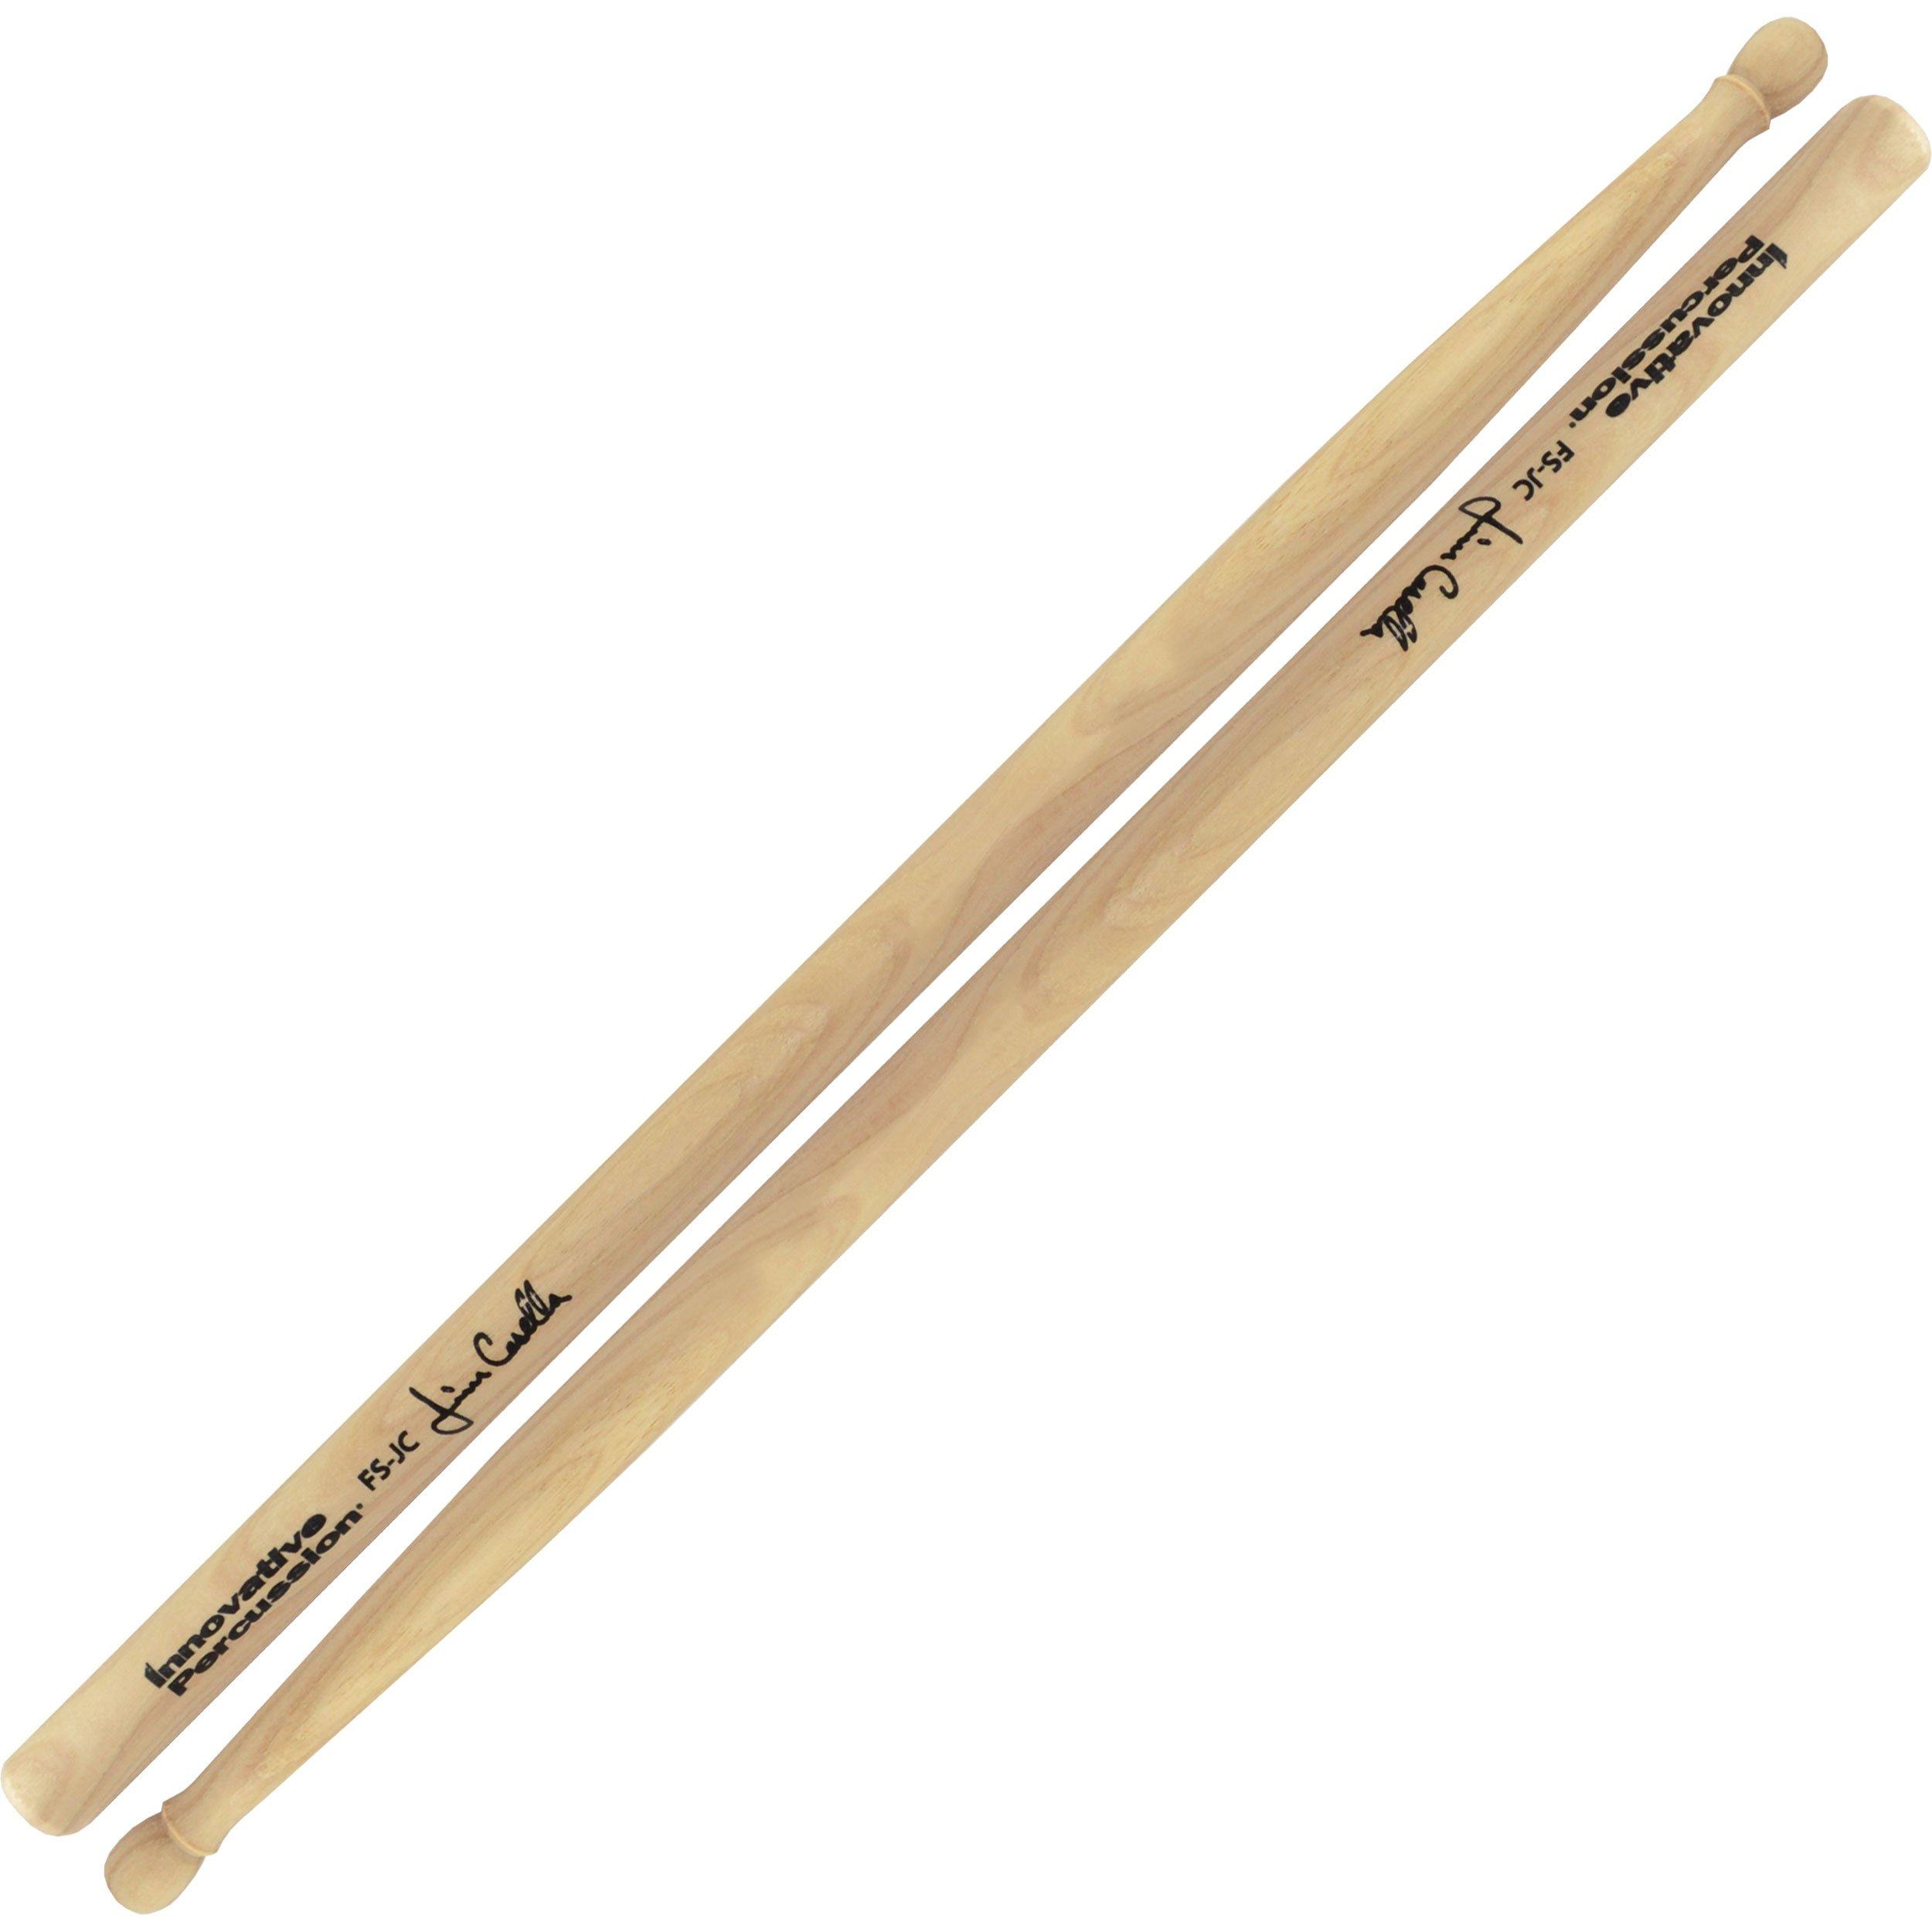 Innovative Percussion FSJC Marching Snare Field Series Jim Casella Signature Drumsticks